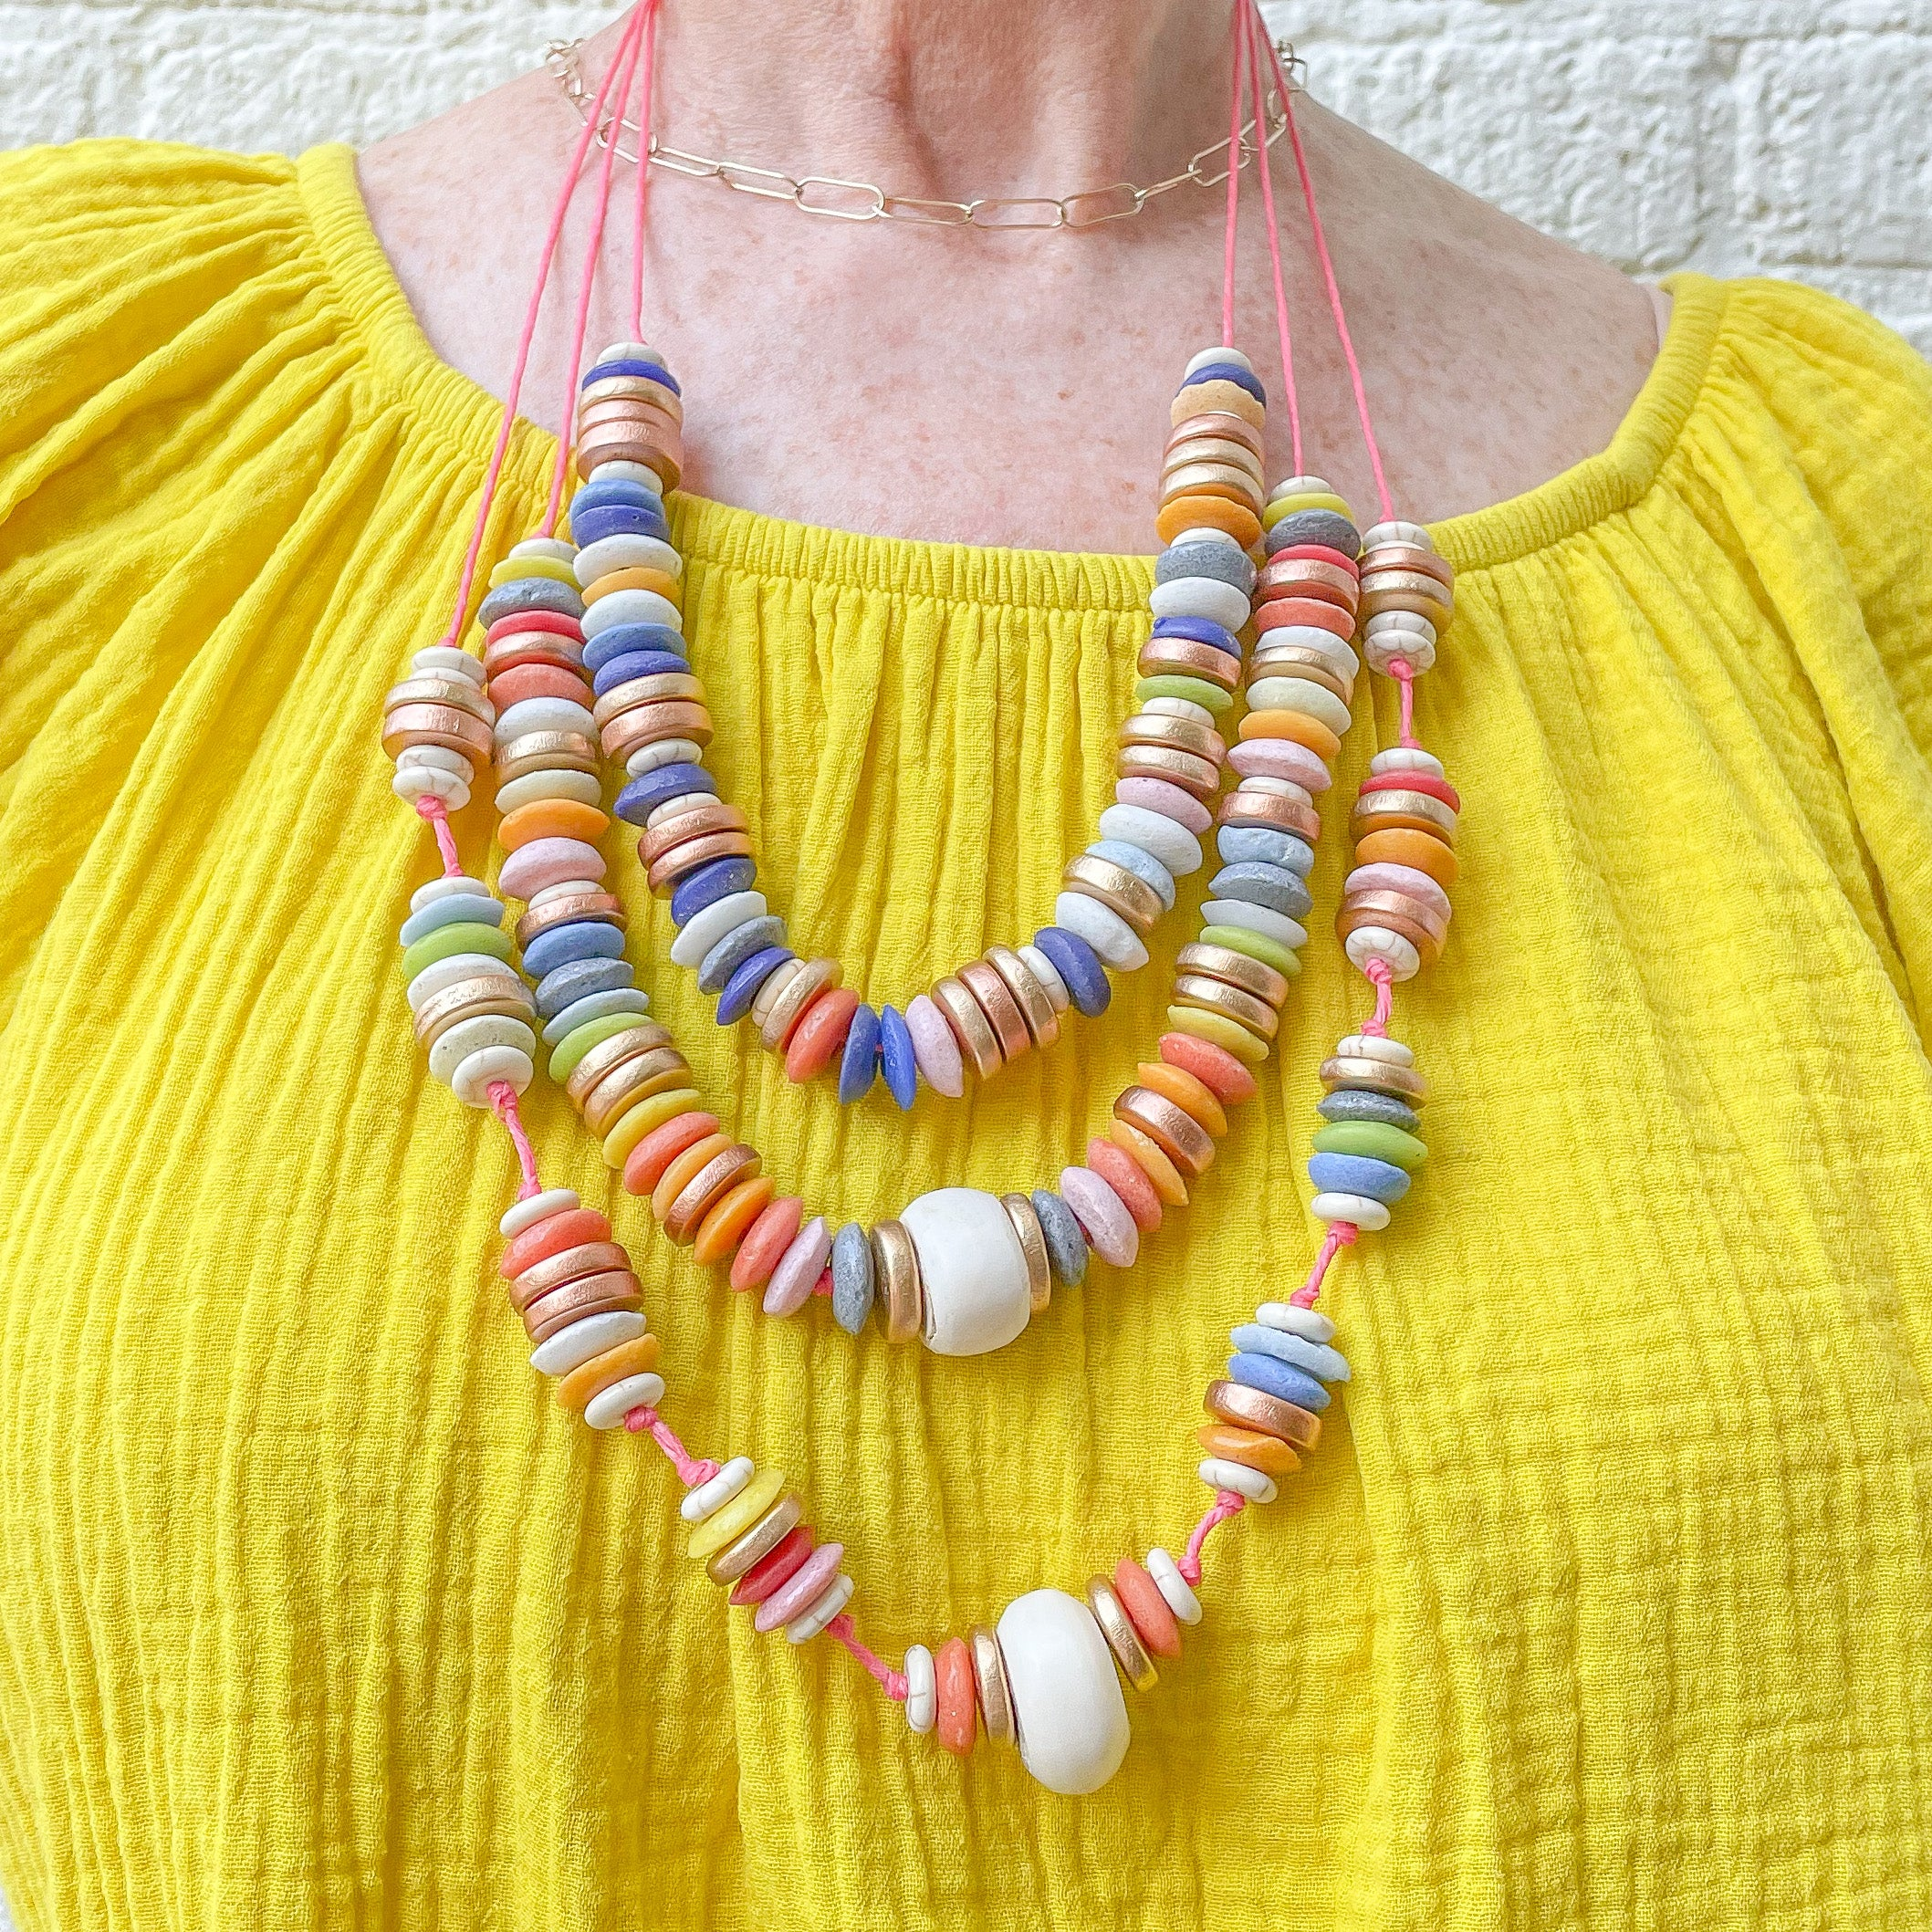 The Cabana Necklace Making Kit